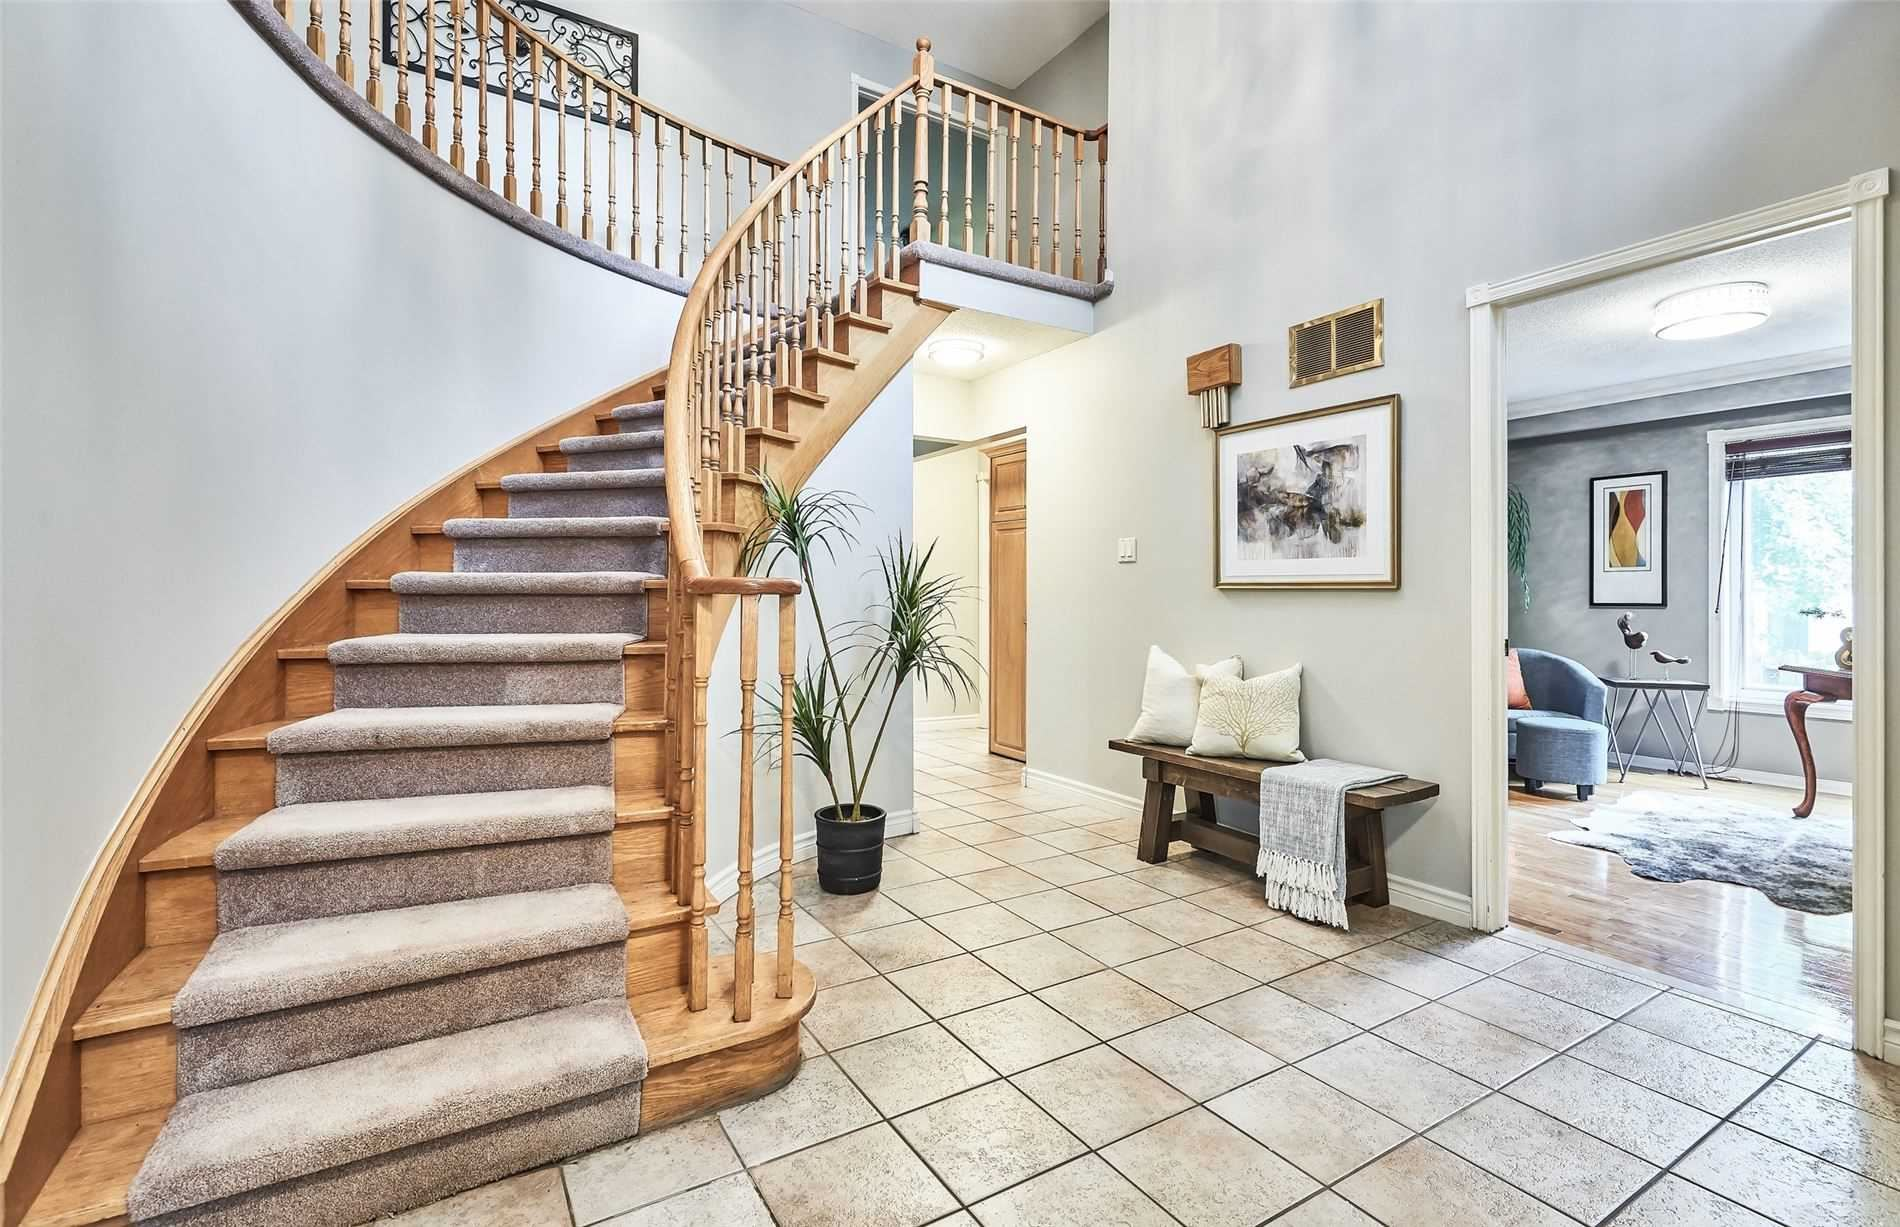 Photo of 38 Fernway Cres, Whitby, ON L1N7G7 (MLS # E5324014)